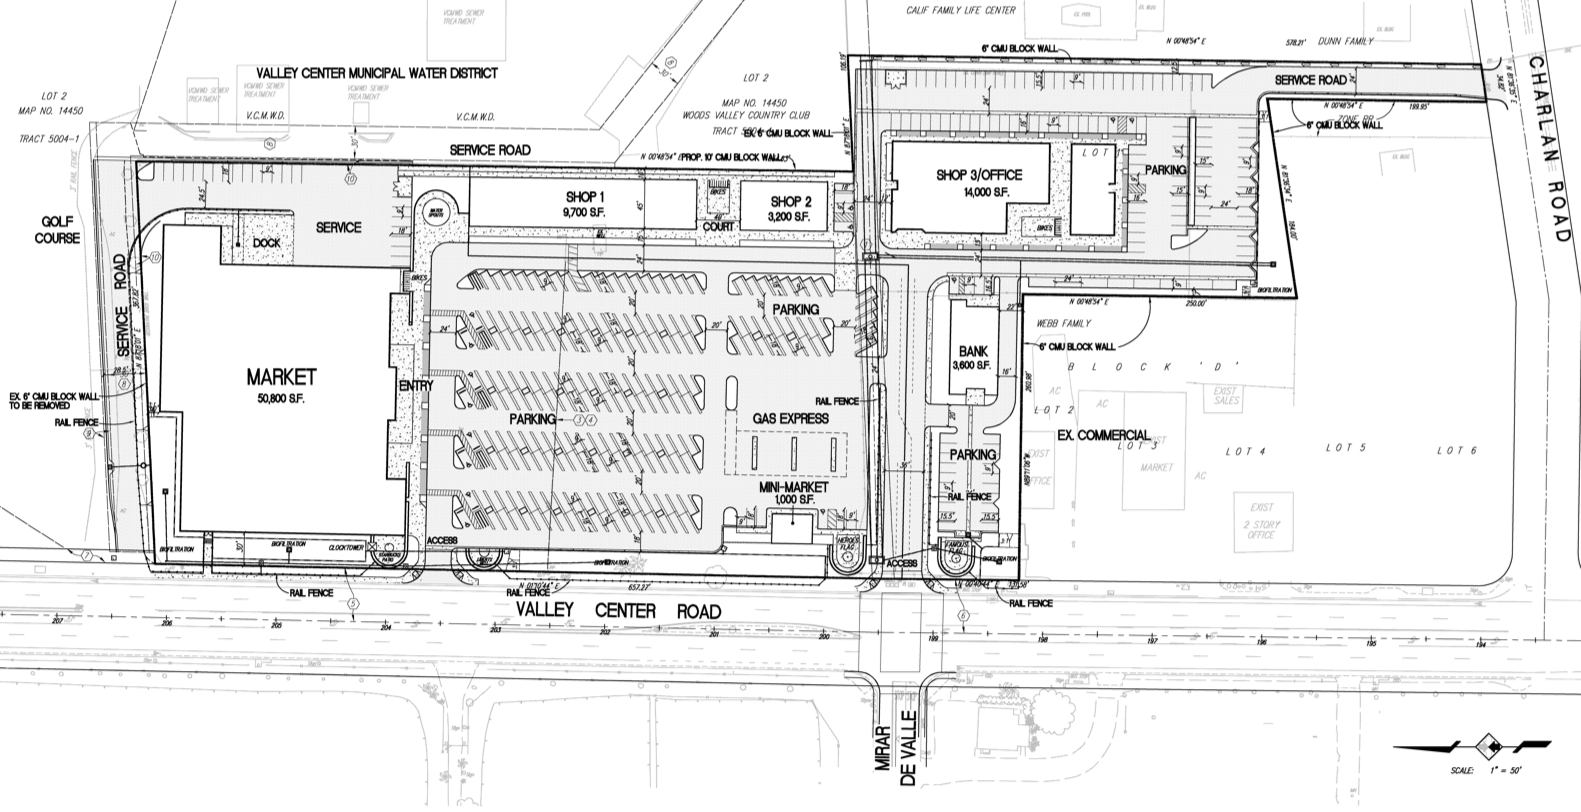 Vons supermarket and gas station coming to Liberty Bell Plaza ...